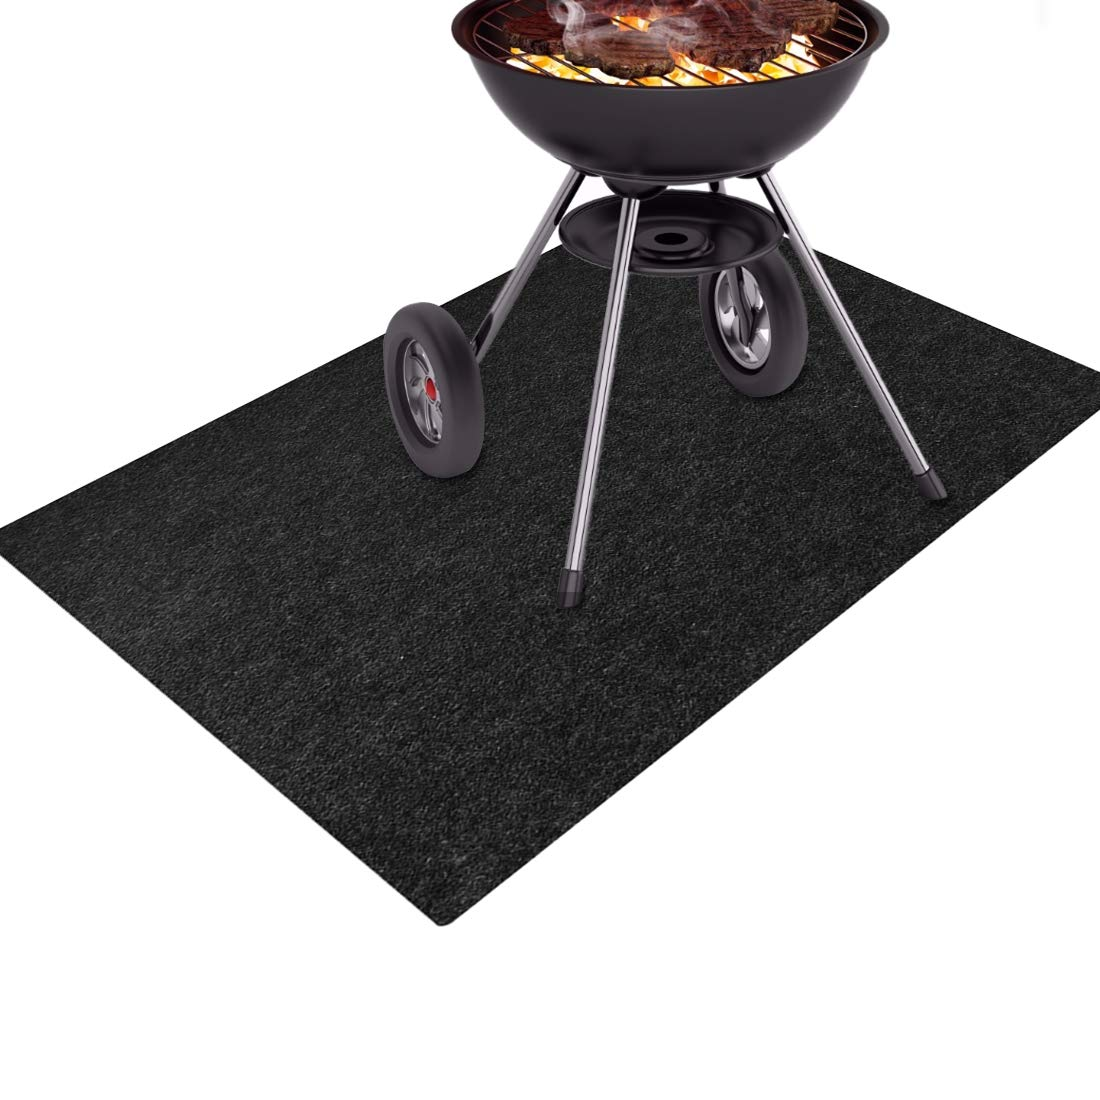 Together-life Gas Grill Splatter Mat, BBQ Fireproof Floor Mats Heat Resistant Non Stick Barbecue Patio Protector Grilling Gear, Backyard Floor Protective Rug